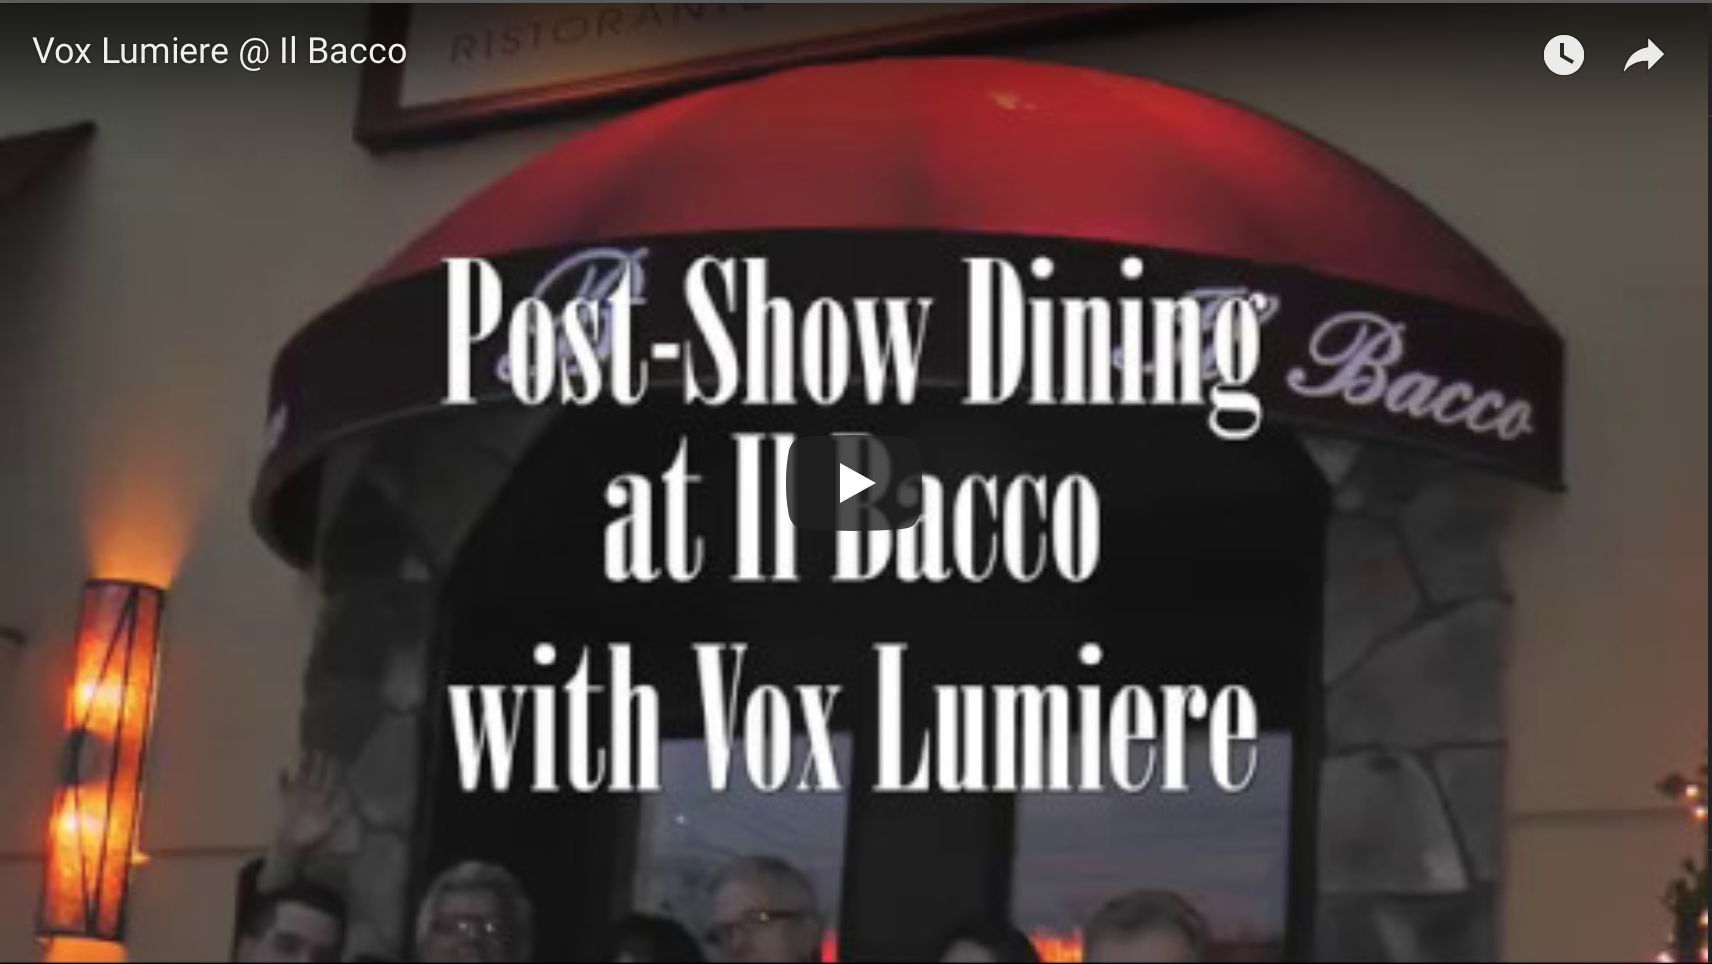 Vox Lumiere Pre-Show Dining at Il Bacco